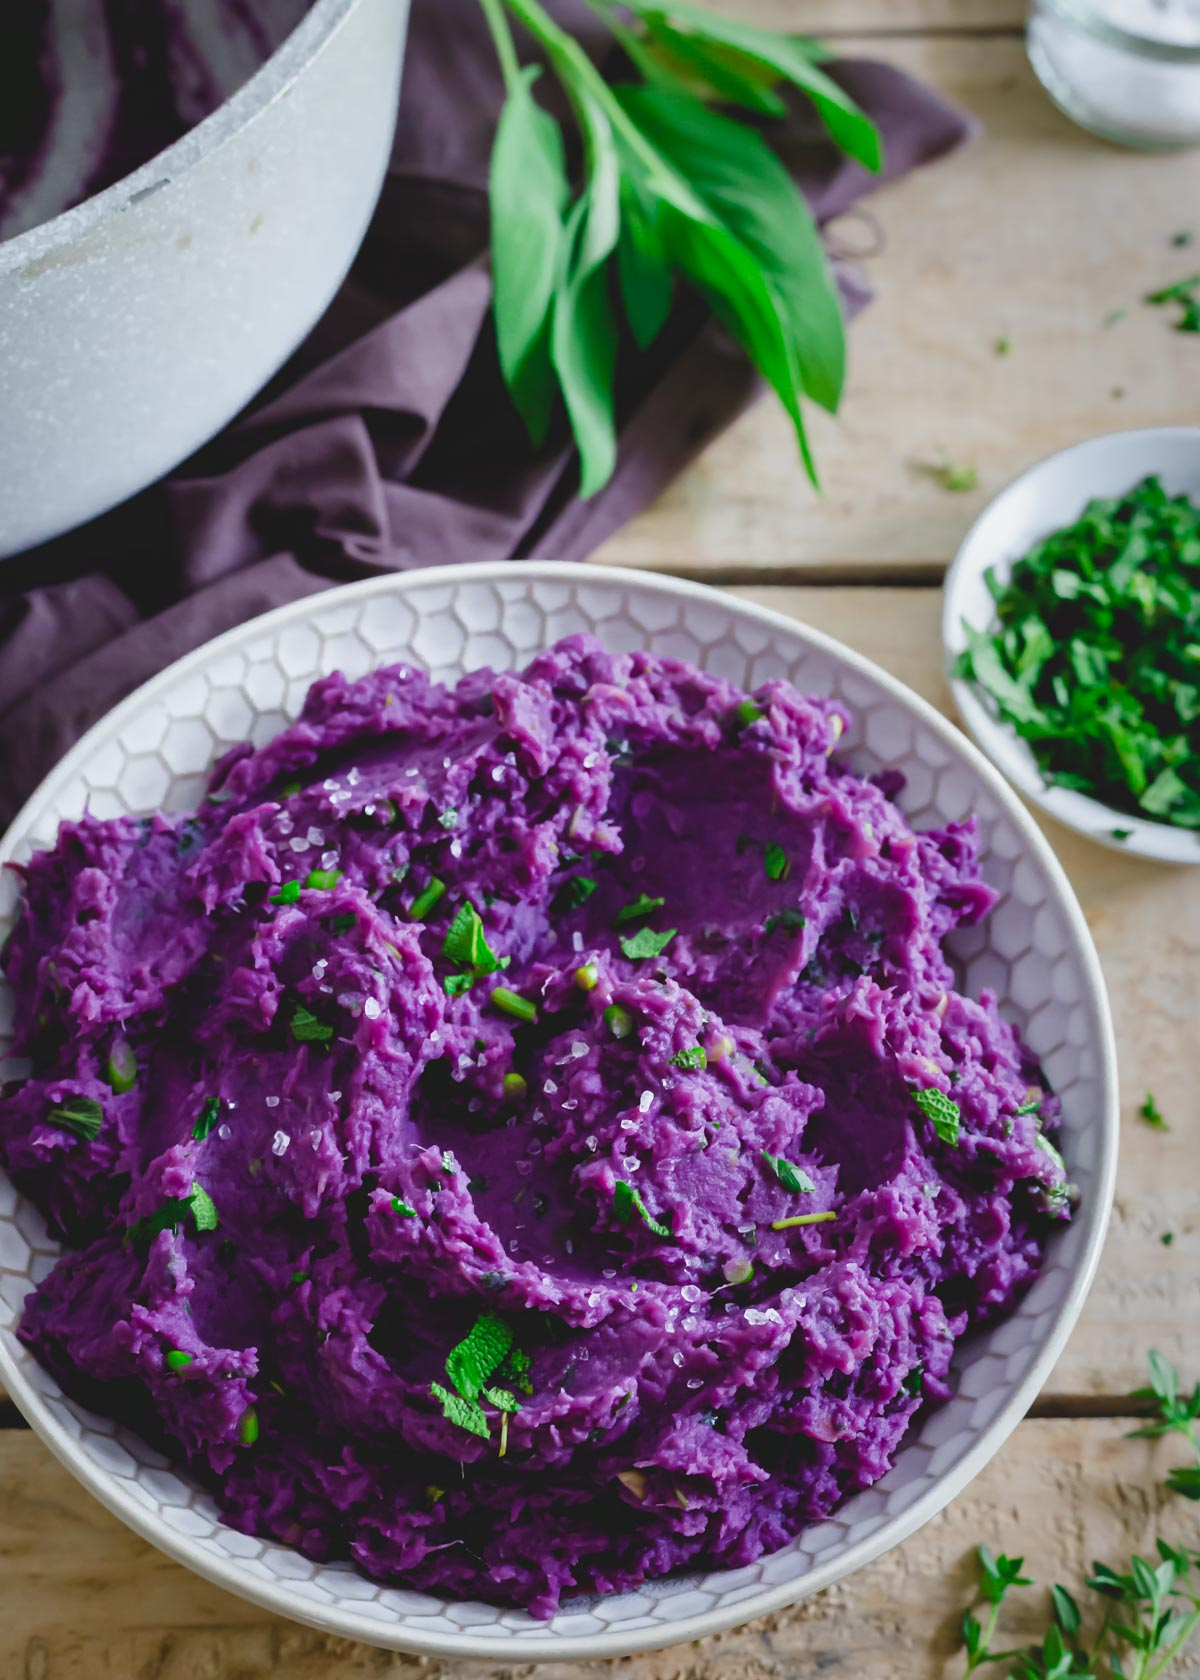 Creamy purple mashed sweet potatoes in a dish with herb butter sauce and sea salt.